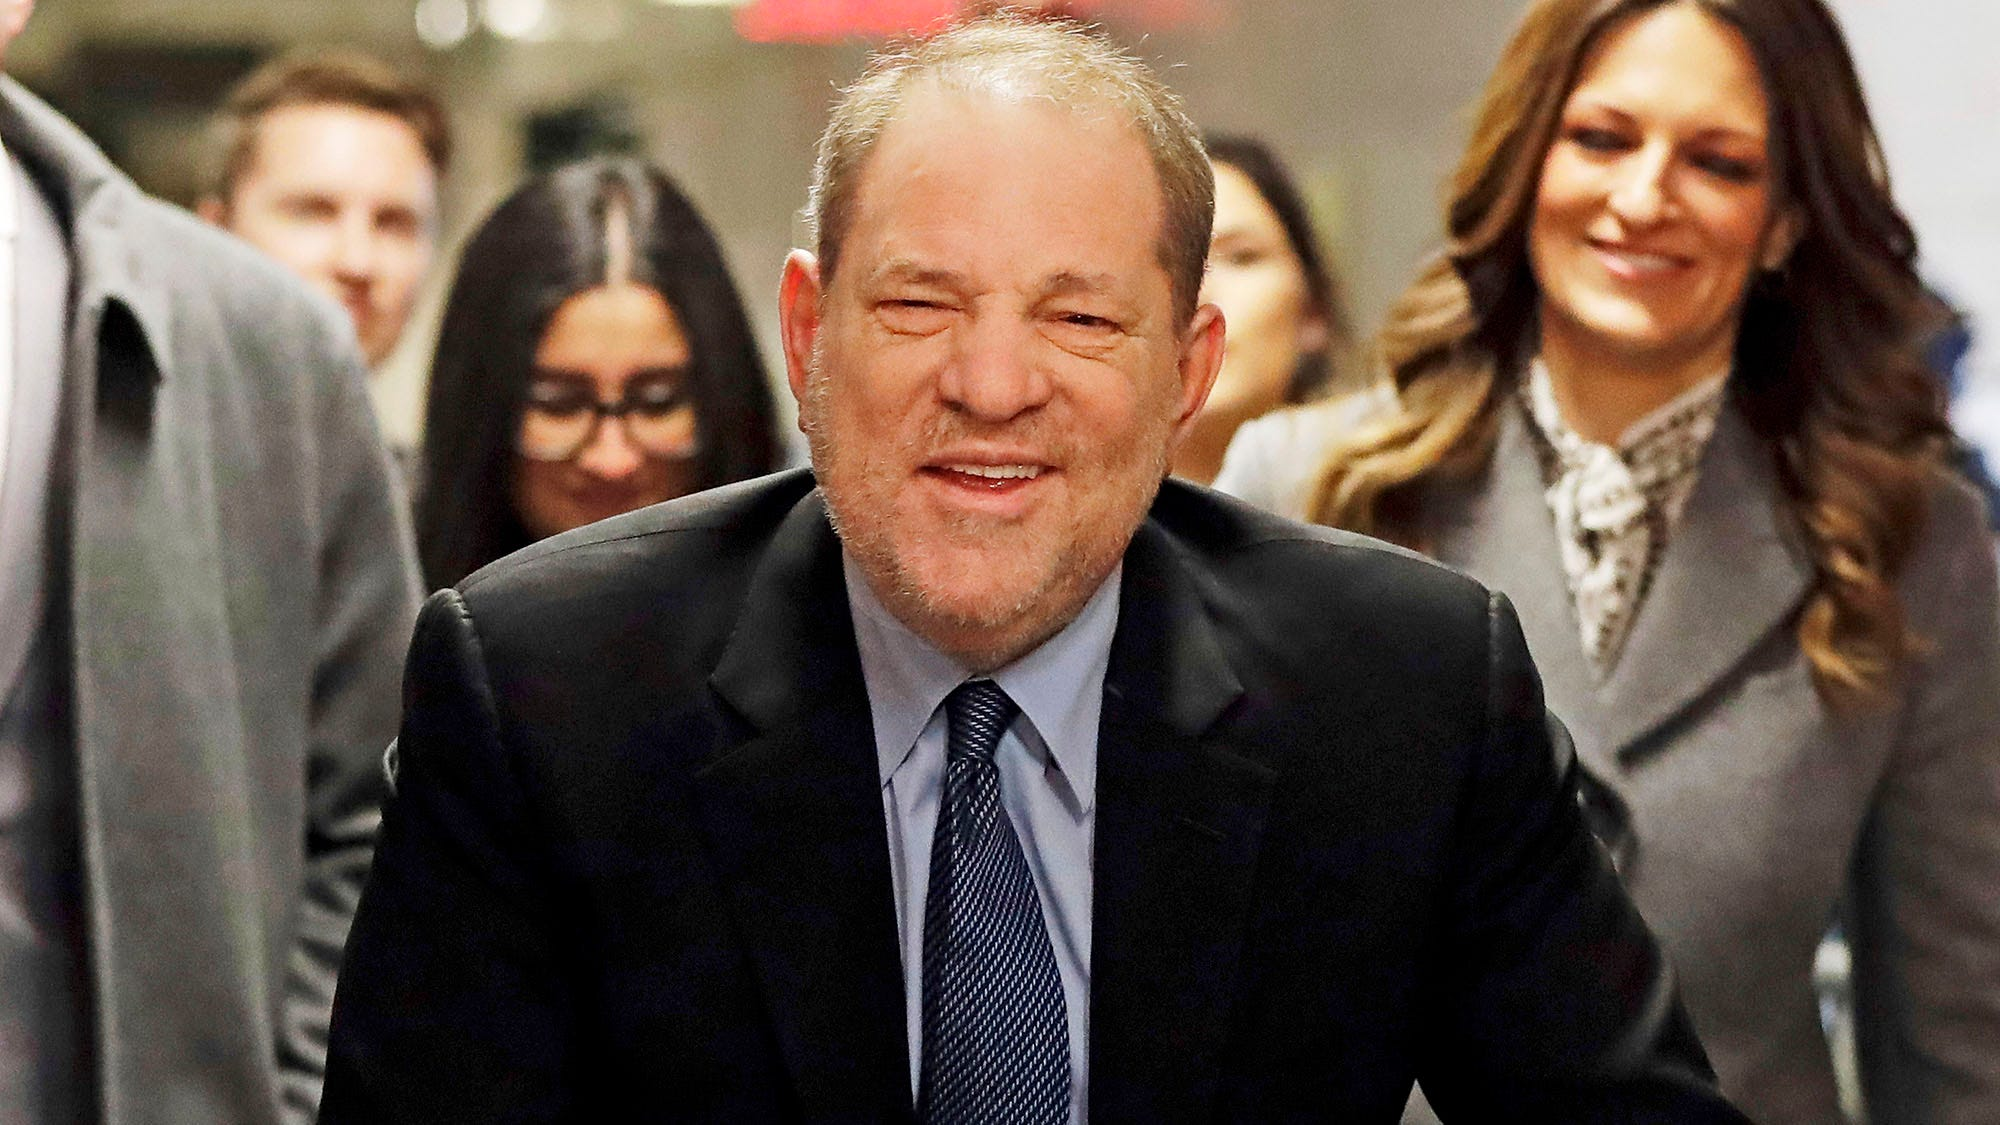 Harvey Weinstein rape trial faces pivotal moment with latest testimony - Fox Business